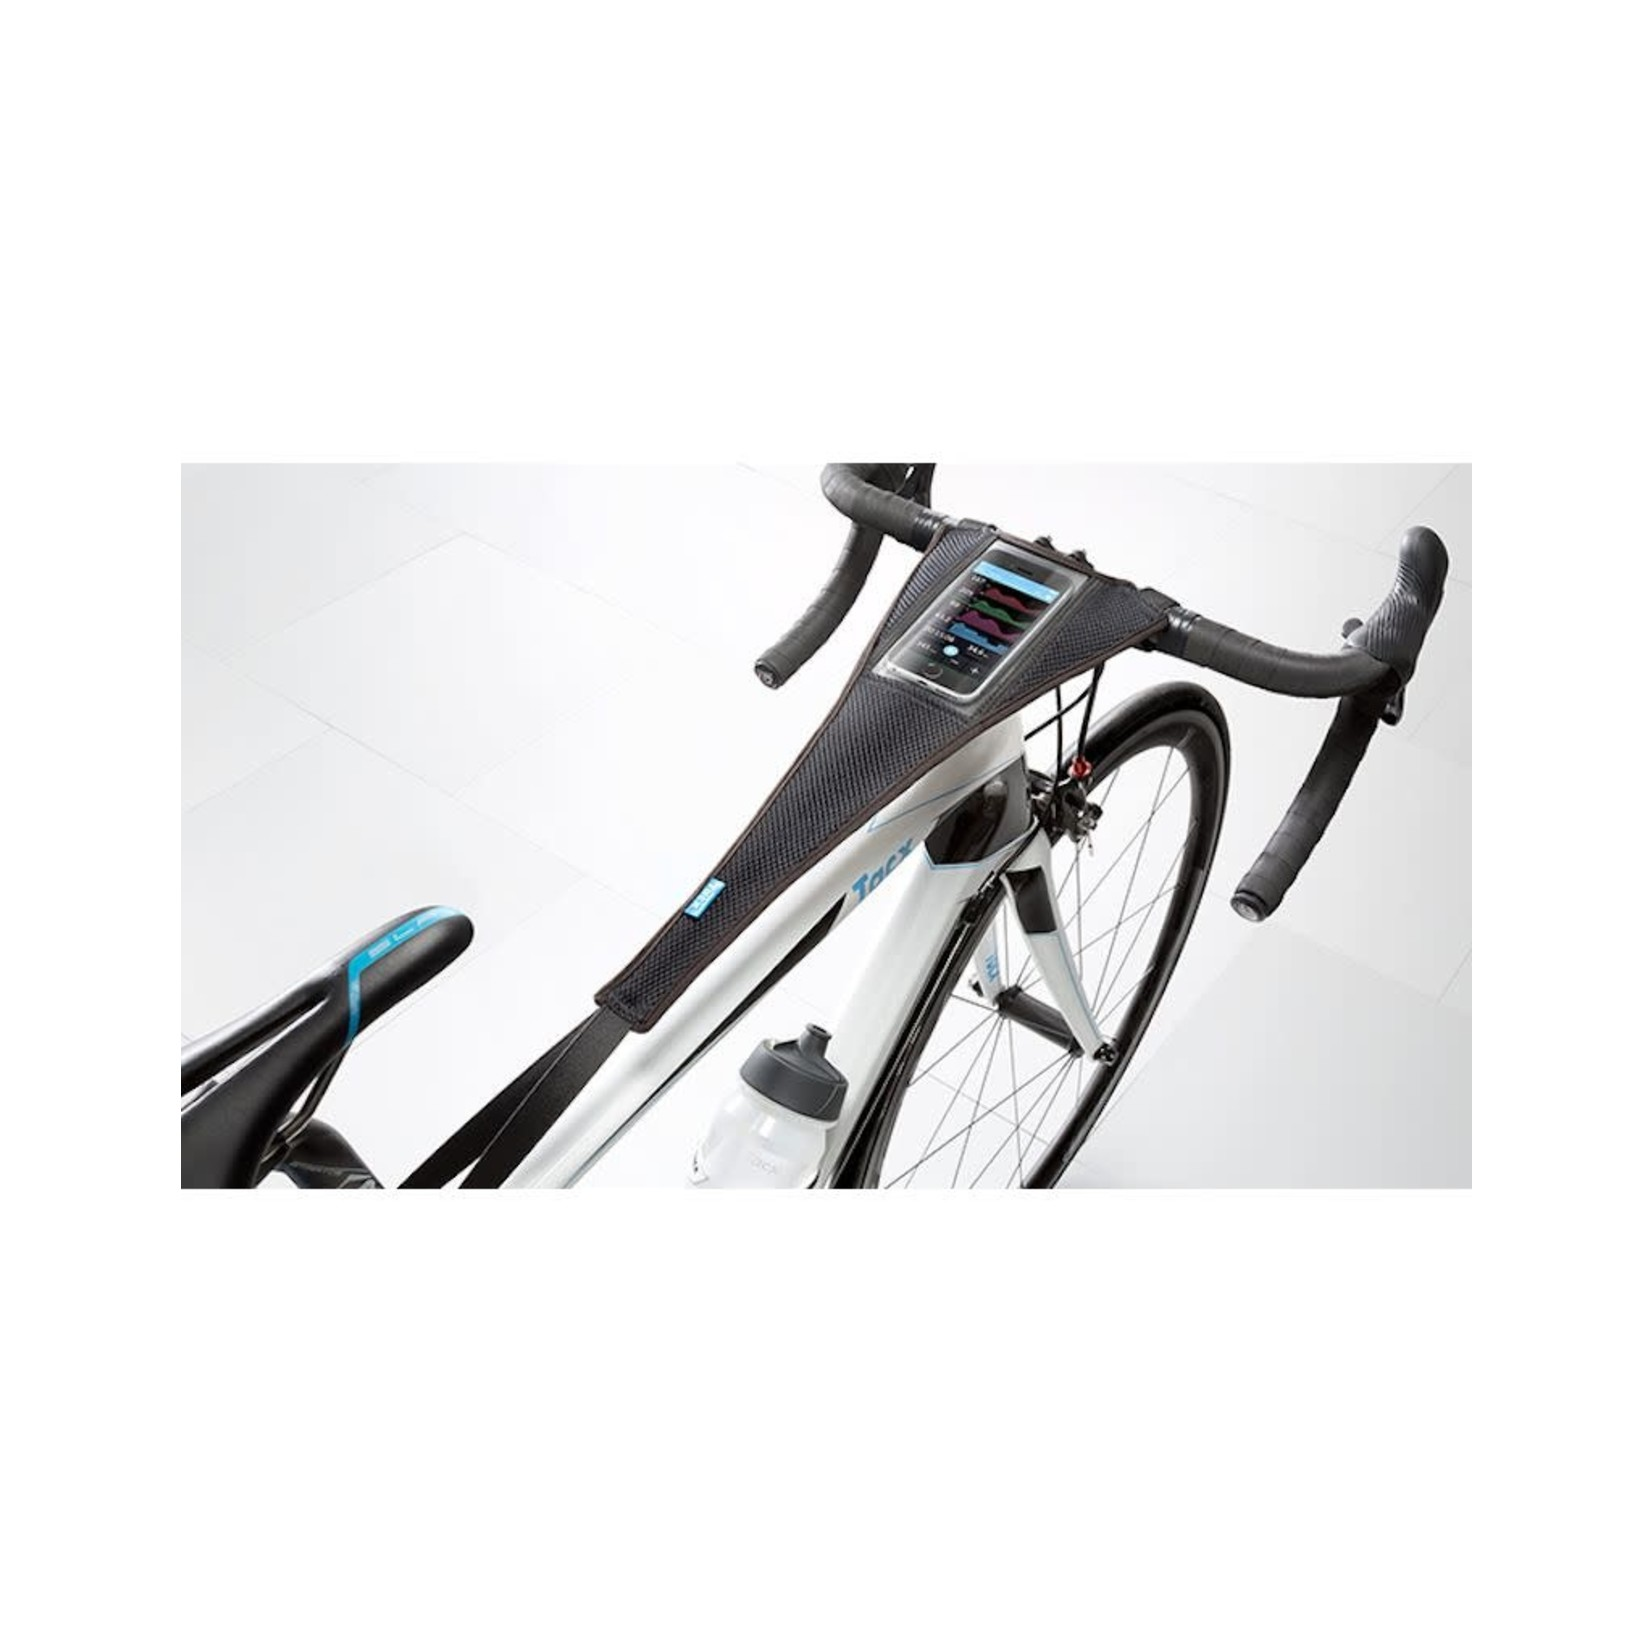 Tacx Tacx Sweat Set (Towel + Sweat Cover For Smartphone):